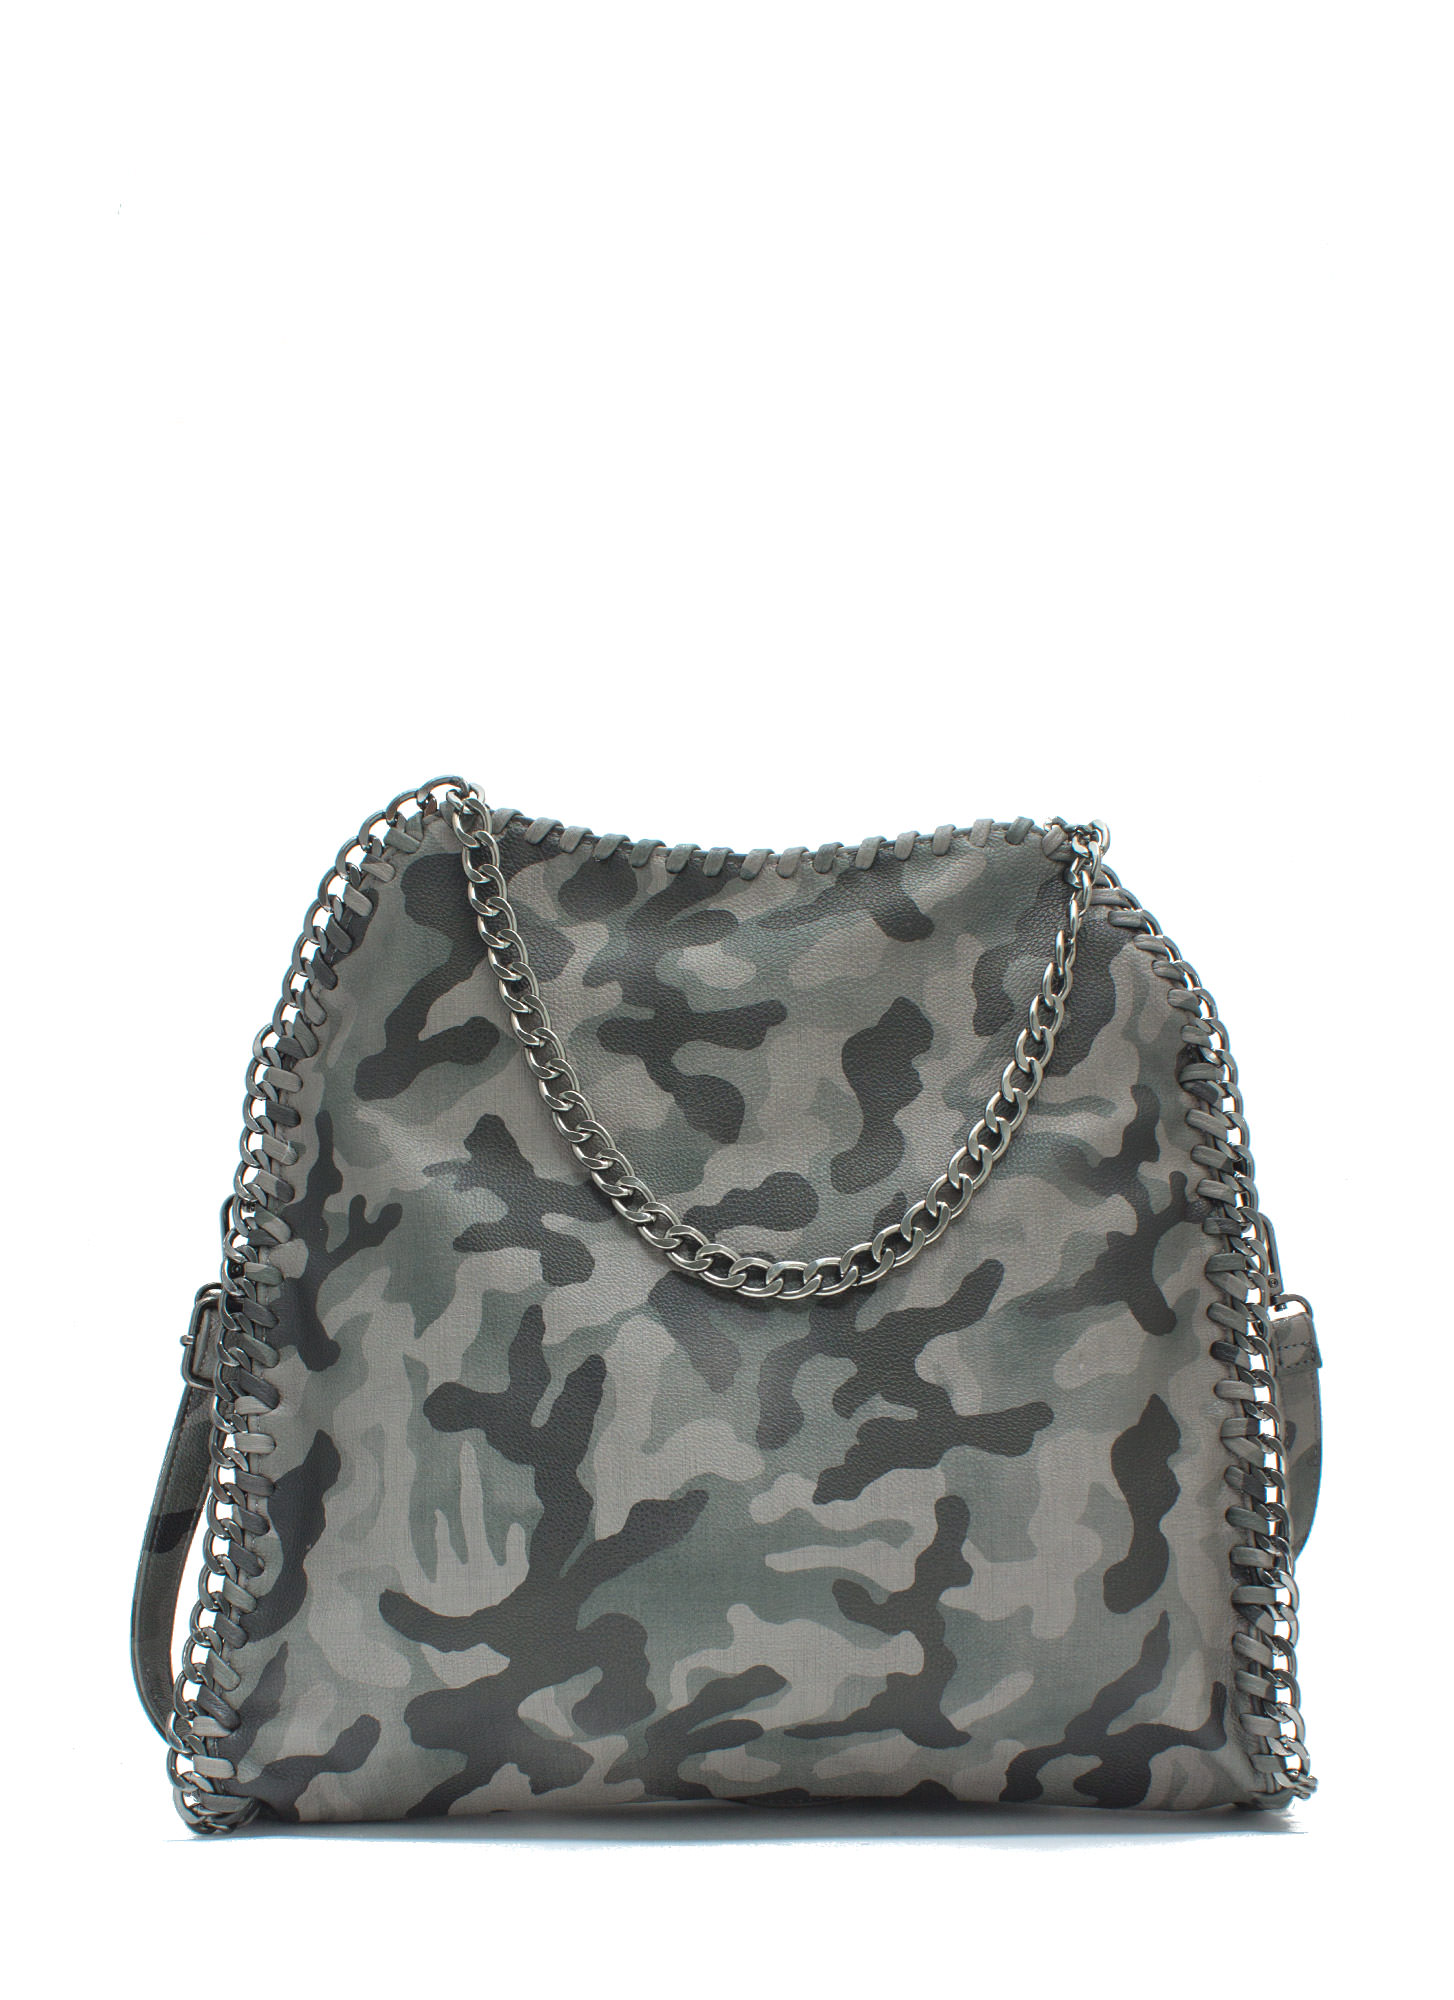 Be Seen Faux Leather 'N Chains Handbag GREYOLIVE